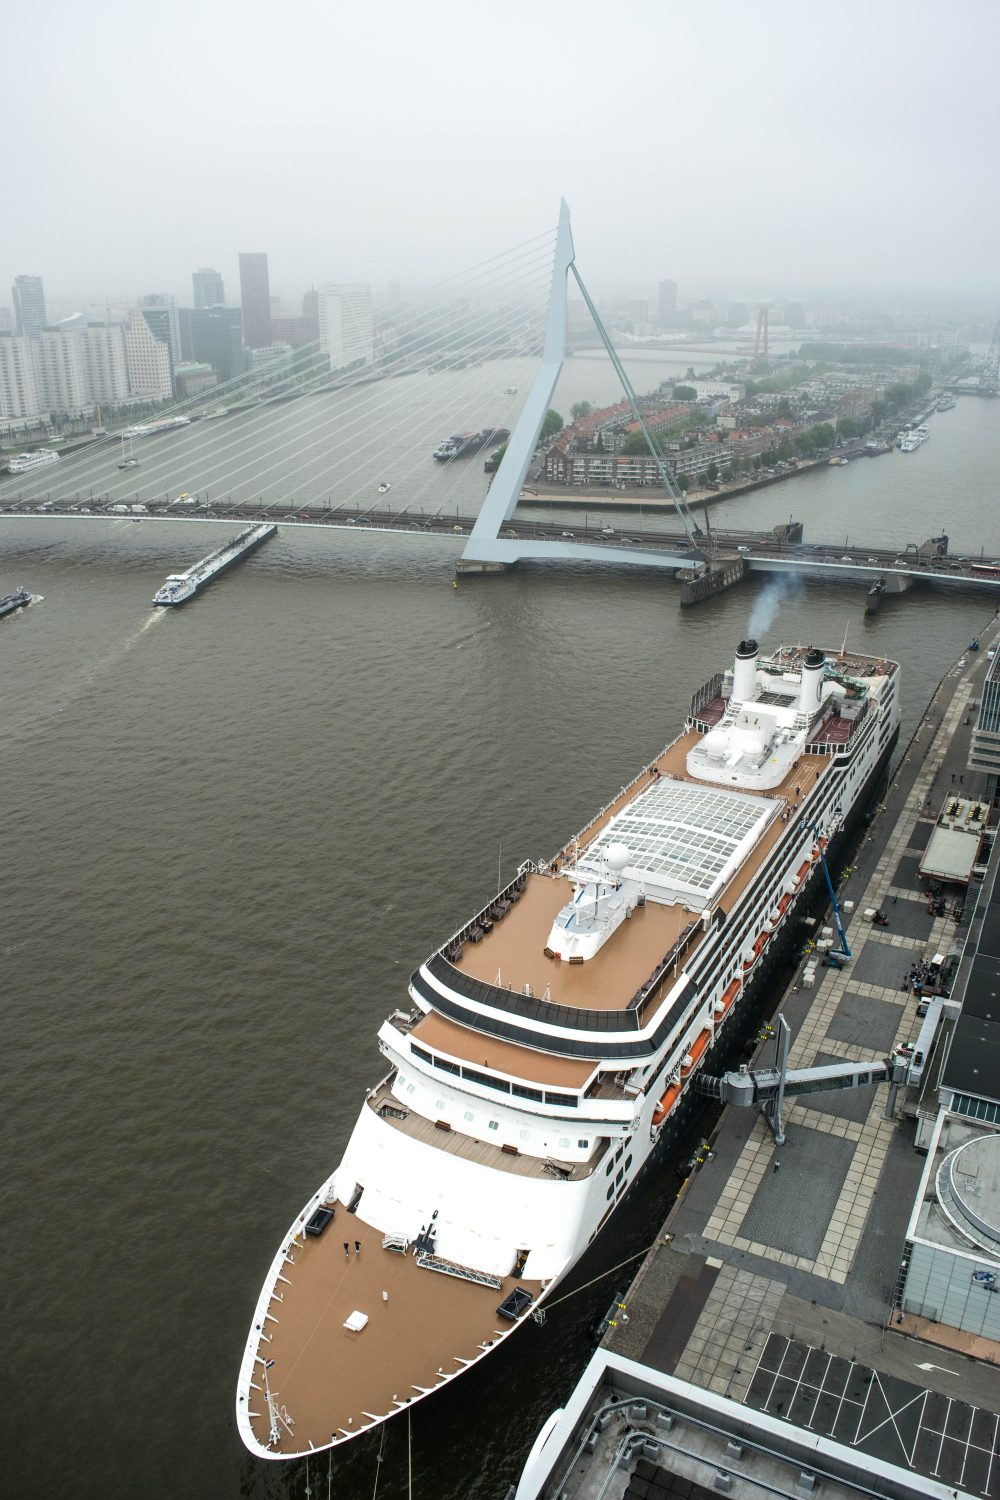 Dakendagen Rotterdam Rooftop Days looking down at MS Rotterdam and the Erasmusbrug